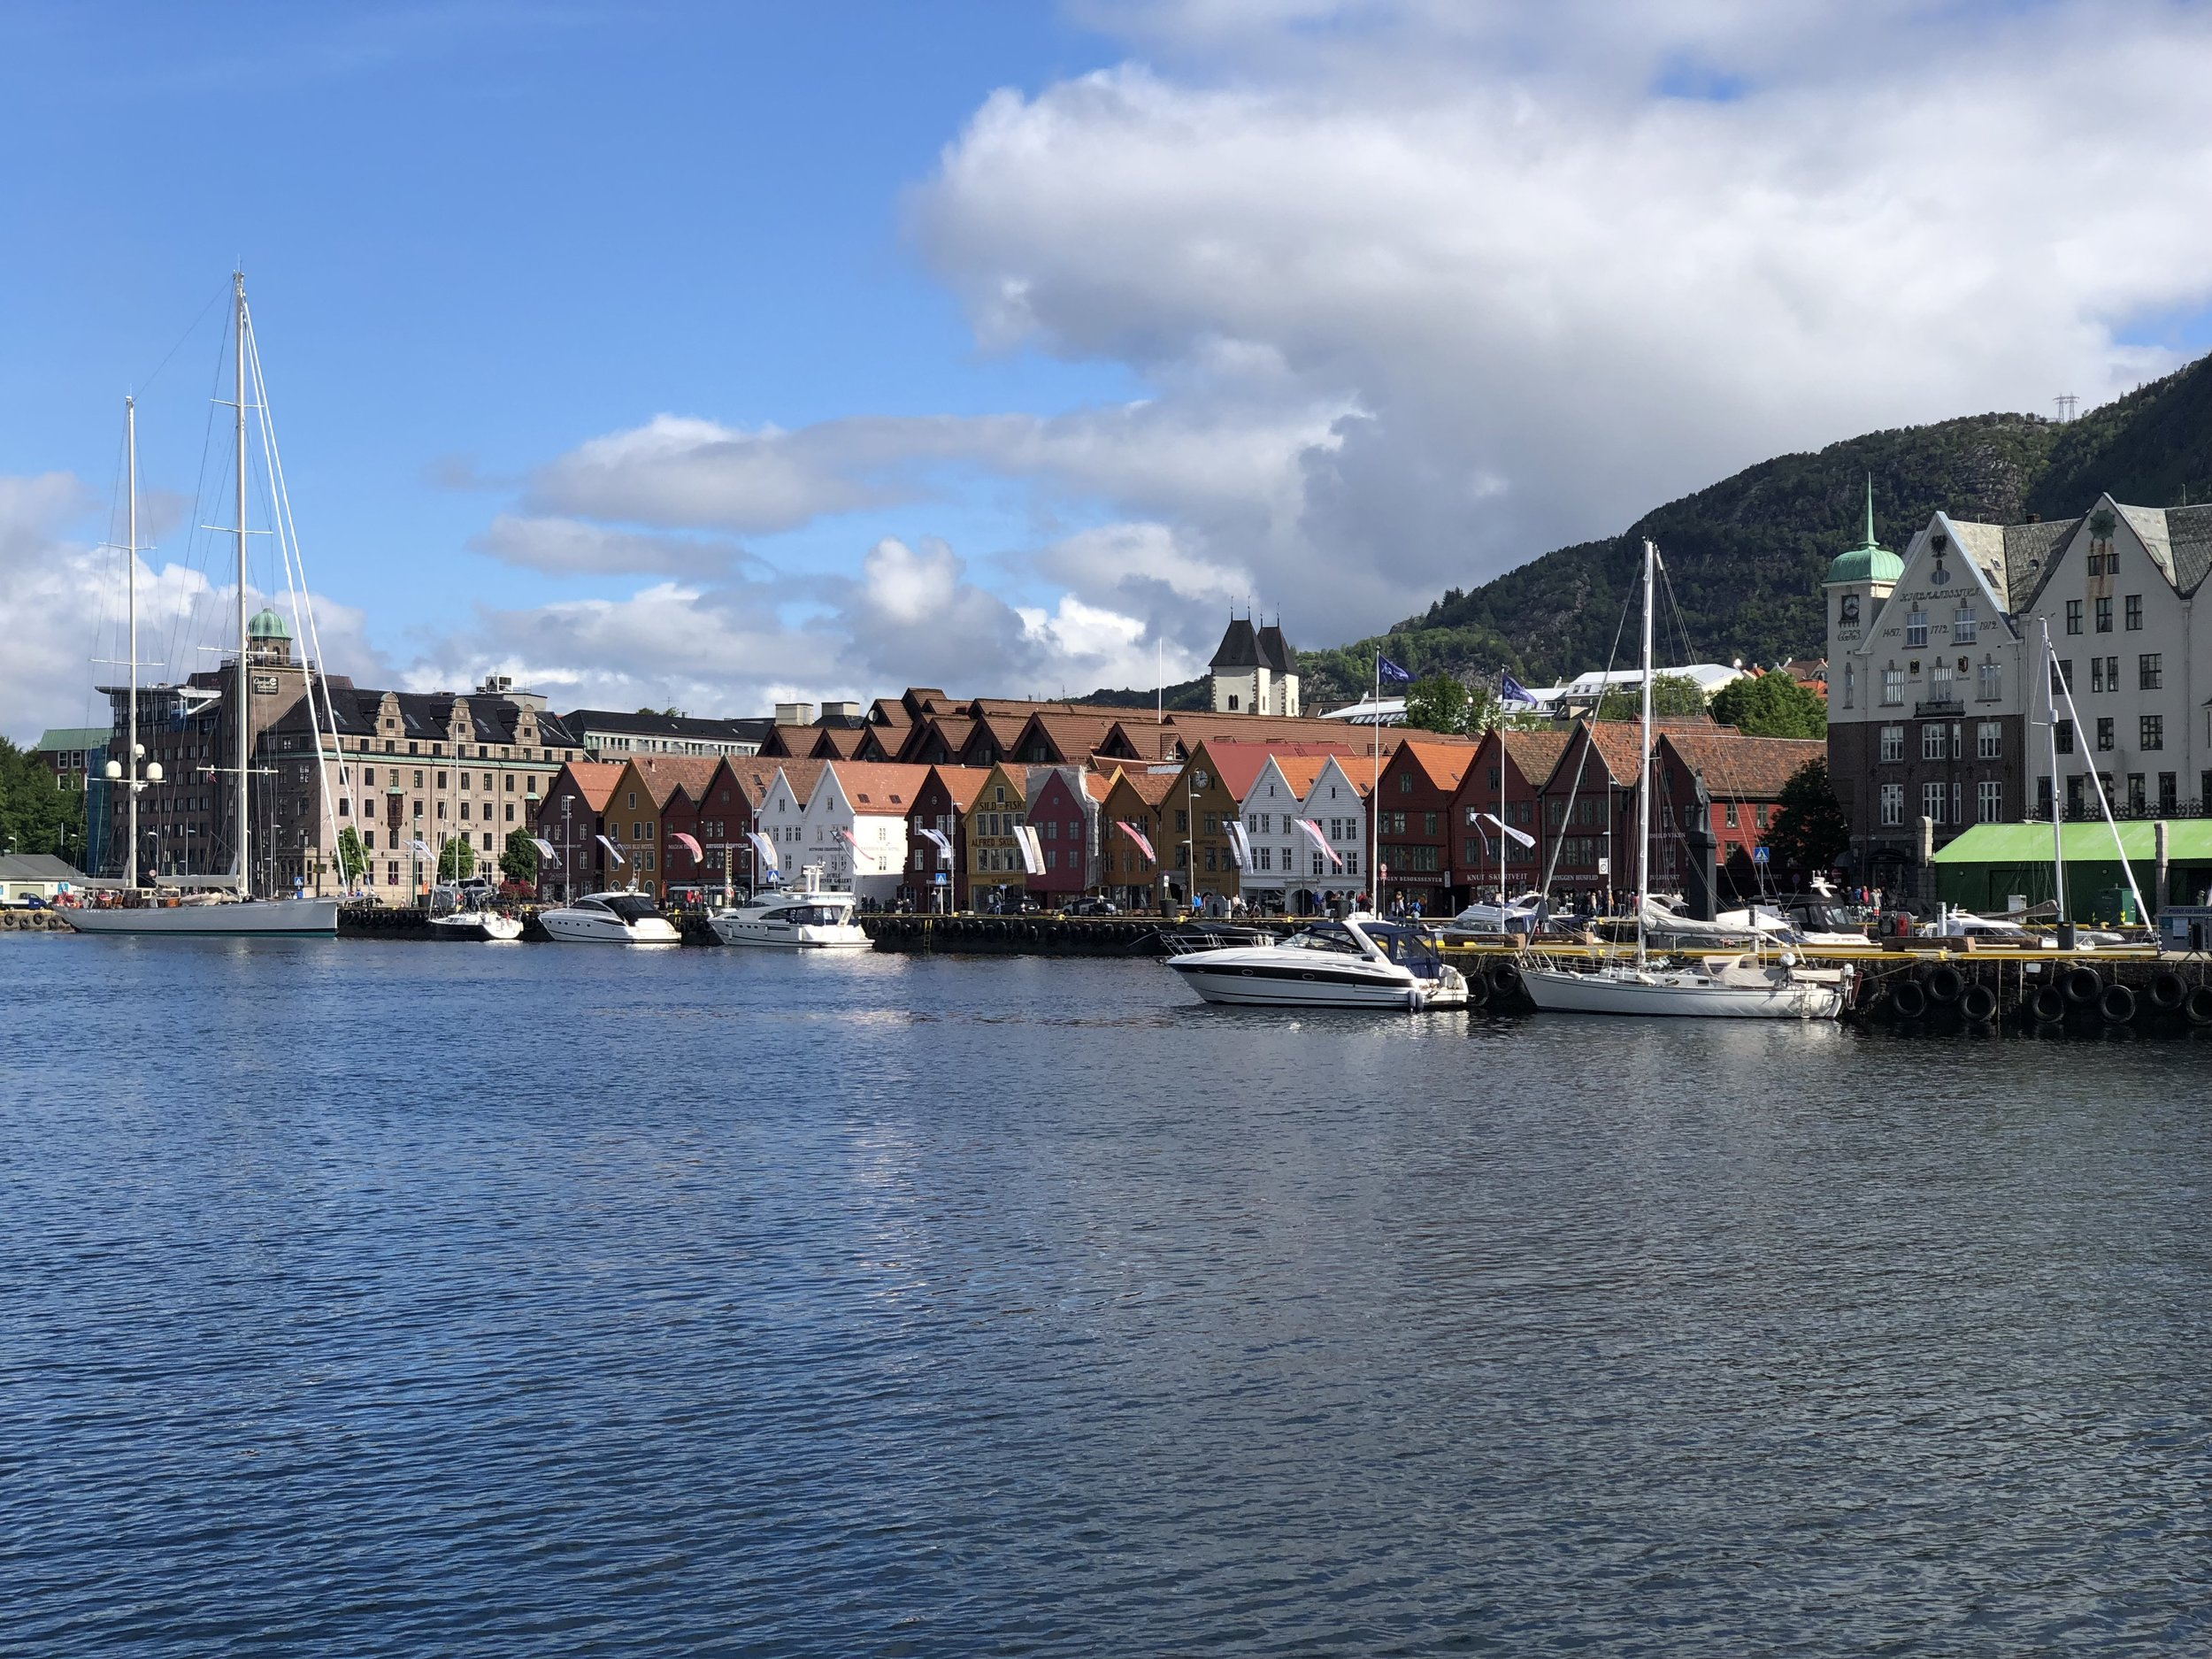 After Oslo, we took the train over the mountains to Bergen, which is in a fjord on the west coast. This is a photo of the Bergen harbor.